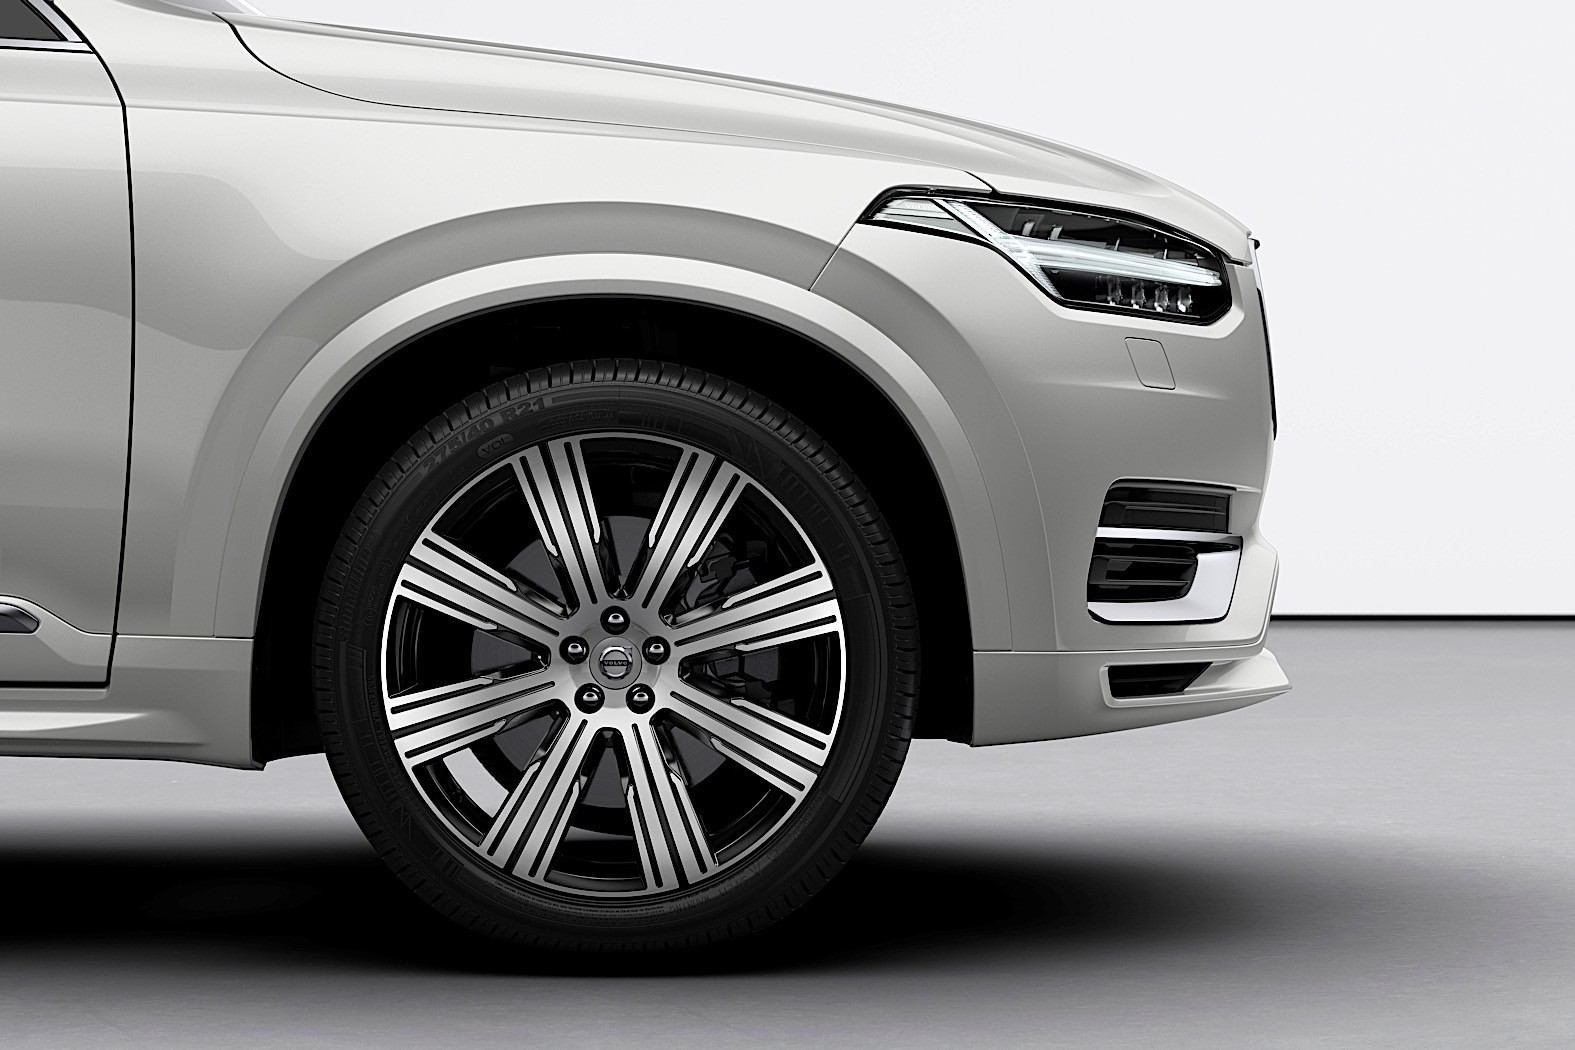 2015 volvo xc90 rendered as pickup truck from your nightmares